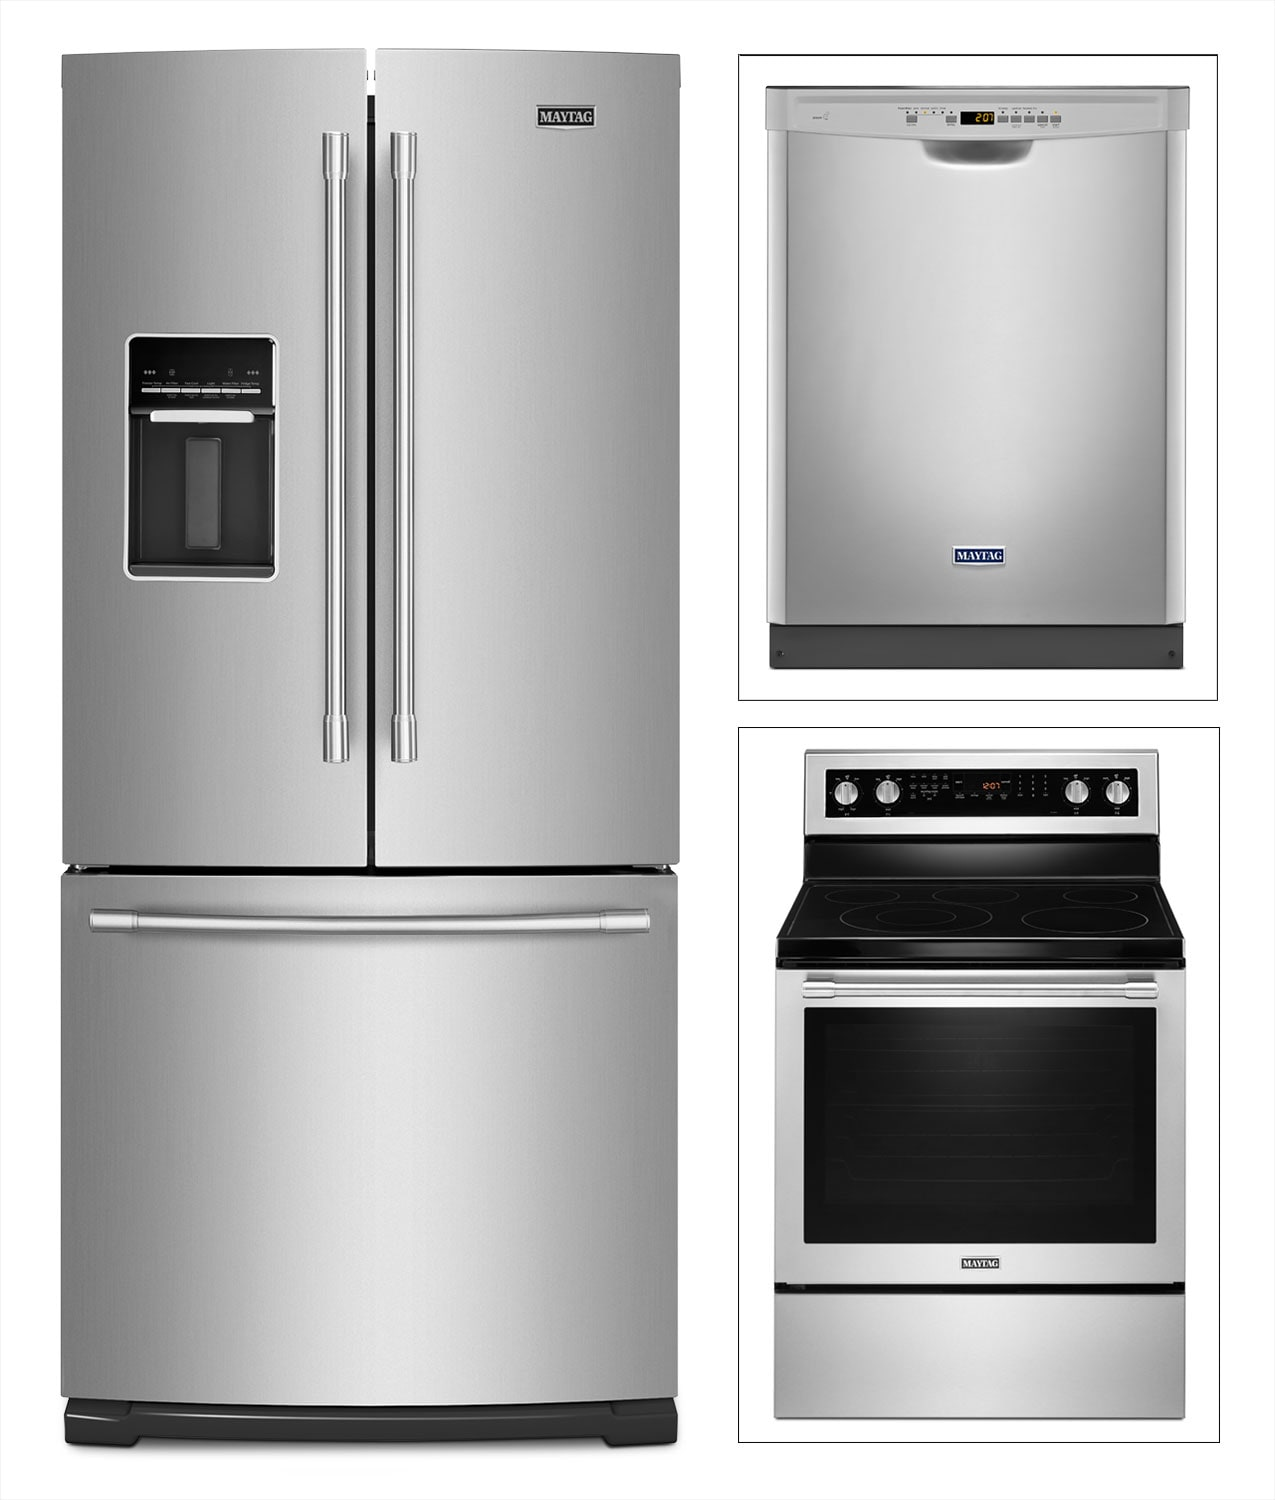 Maytag Stainless Steel French-Door Refrigerator, Electric Range and Dishwasher Package